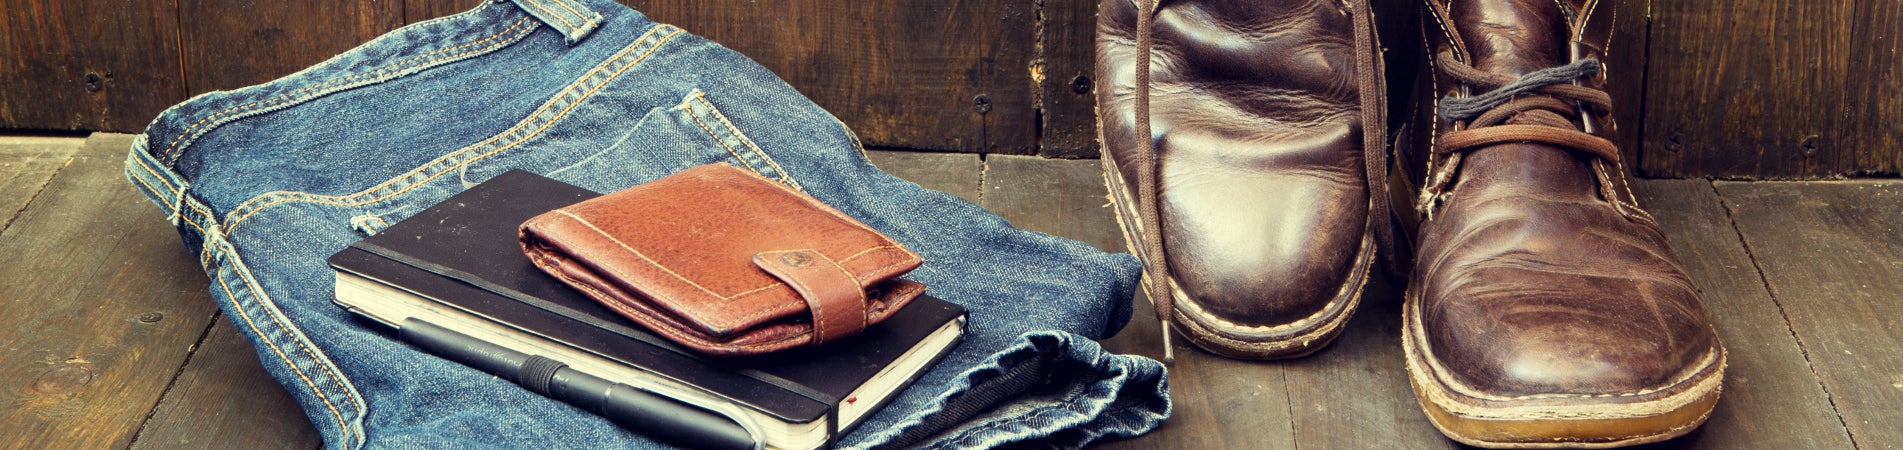 Brown leather boots next to jeans and a wallet